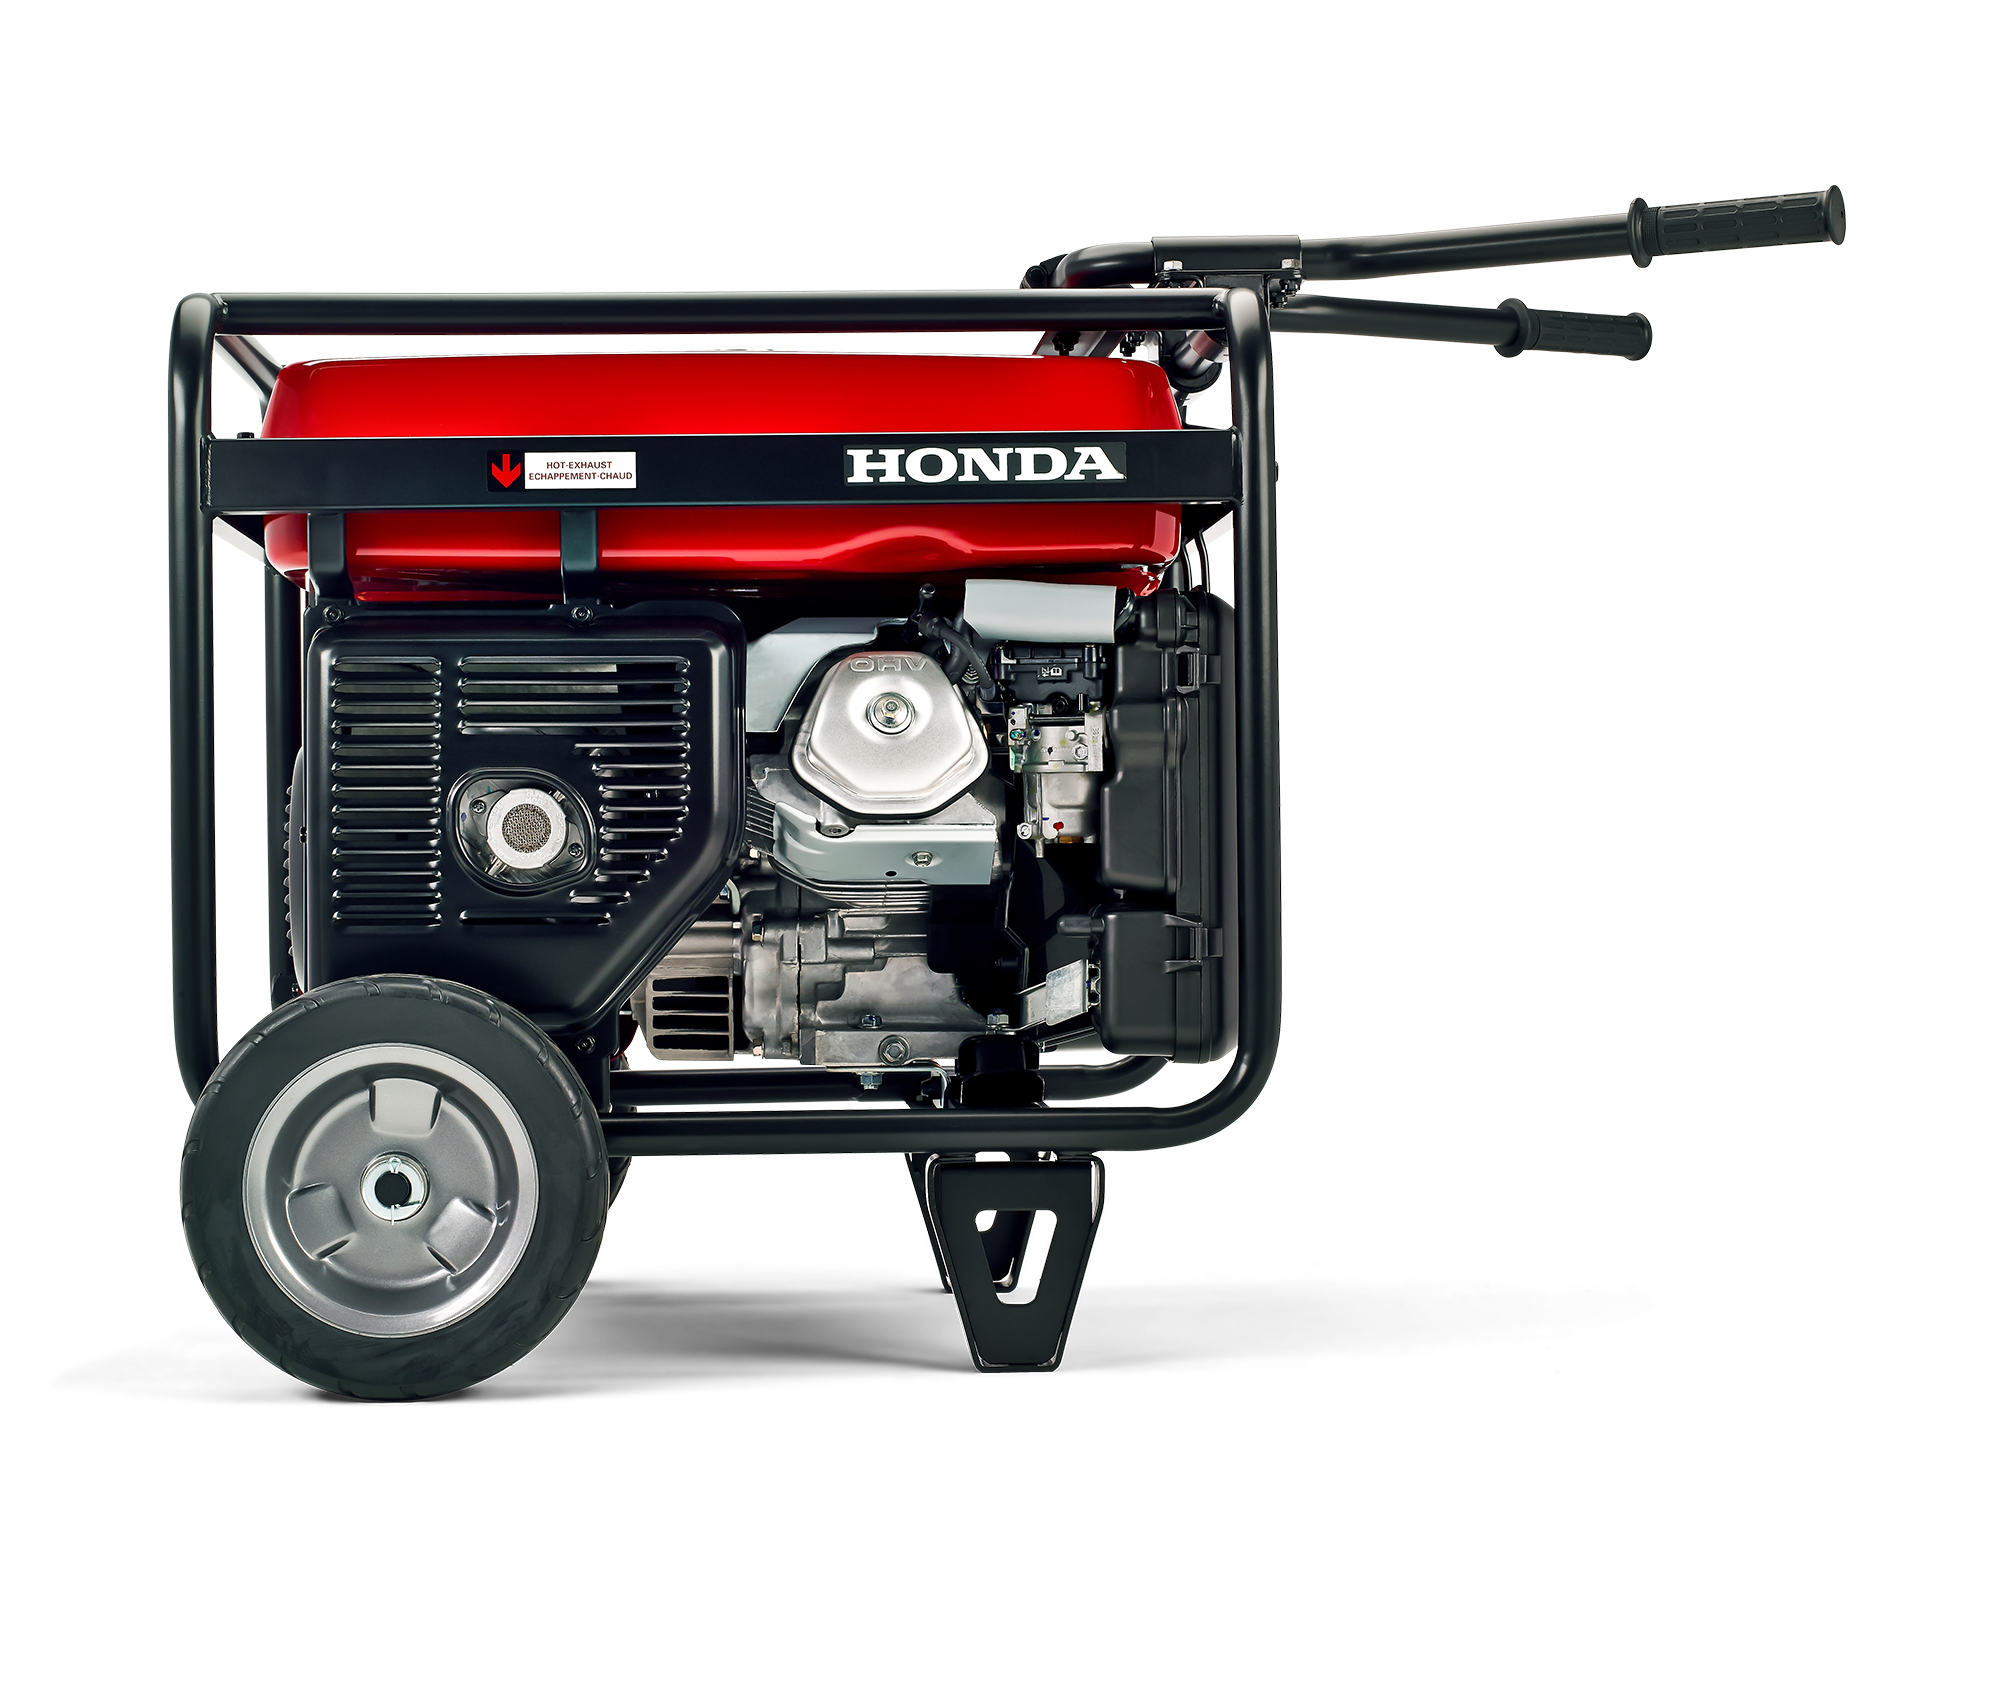 Honda Ew171 Wiring Diagram together with Generac Gp15000e Wiring Diagram furthermore Honda Ex5500 Generator Wiring Diagram together with Parts Diagram Honda Generator Em1800 likewise Honda Gx 620 Wiring Diagram. on es6500 honda generator wiring diagram